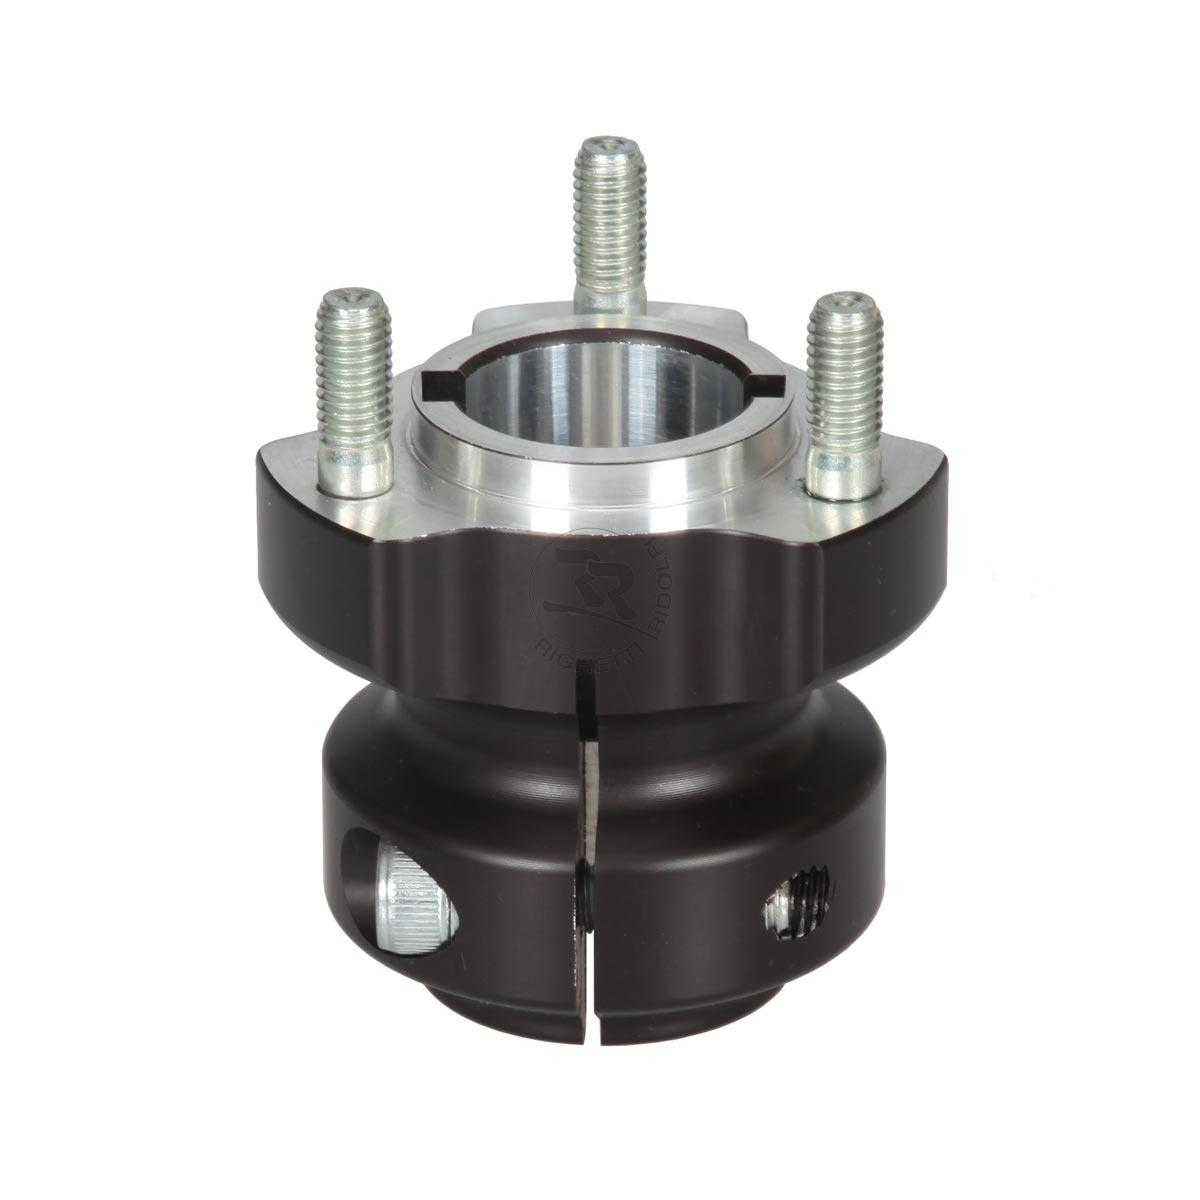 ALUMINIUM REAR HUB 30/62-6/8, BLACK ANODIZED